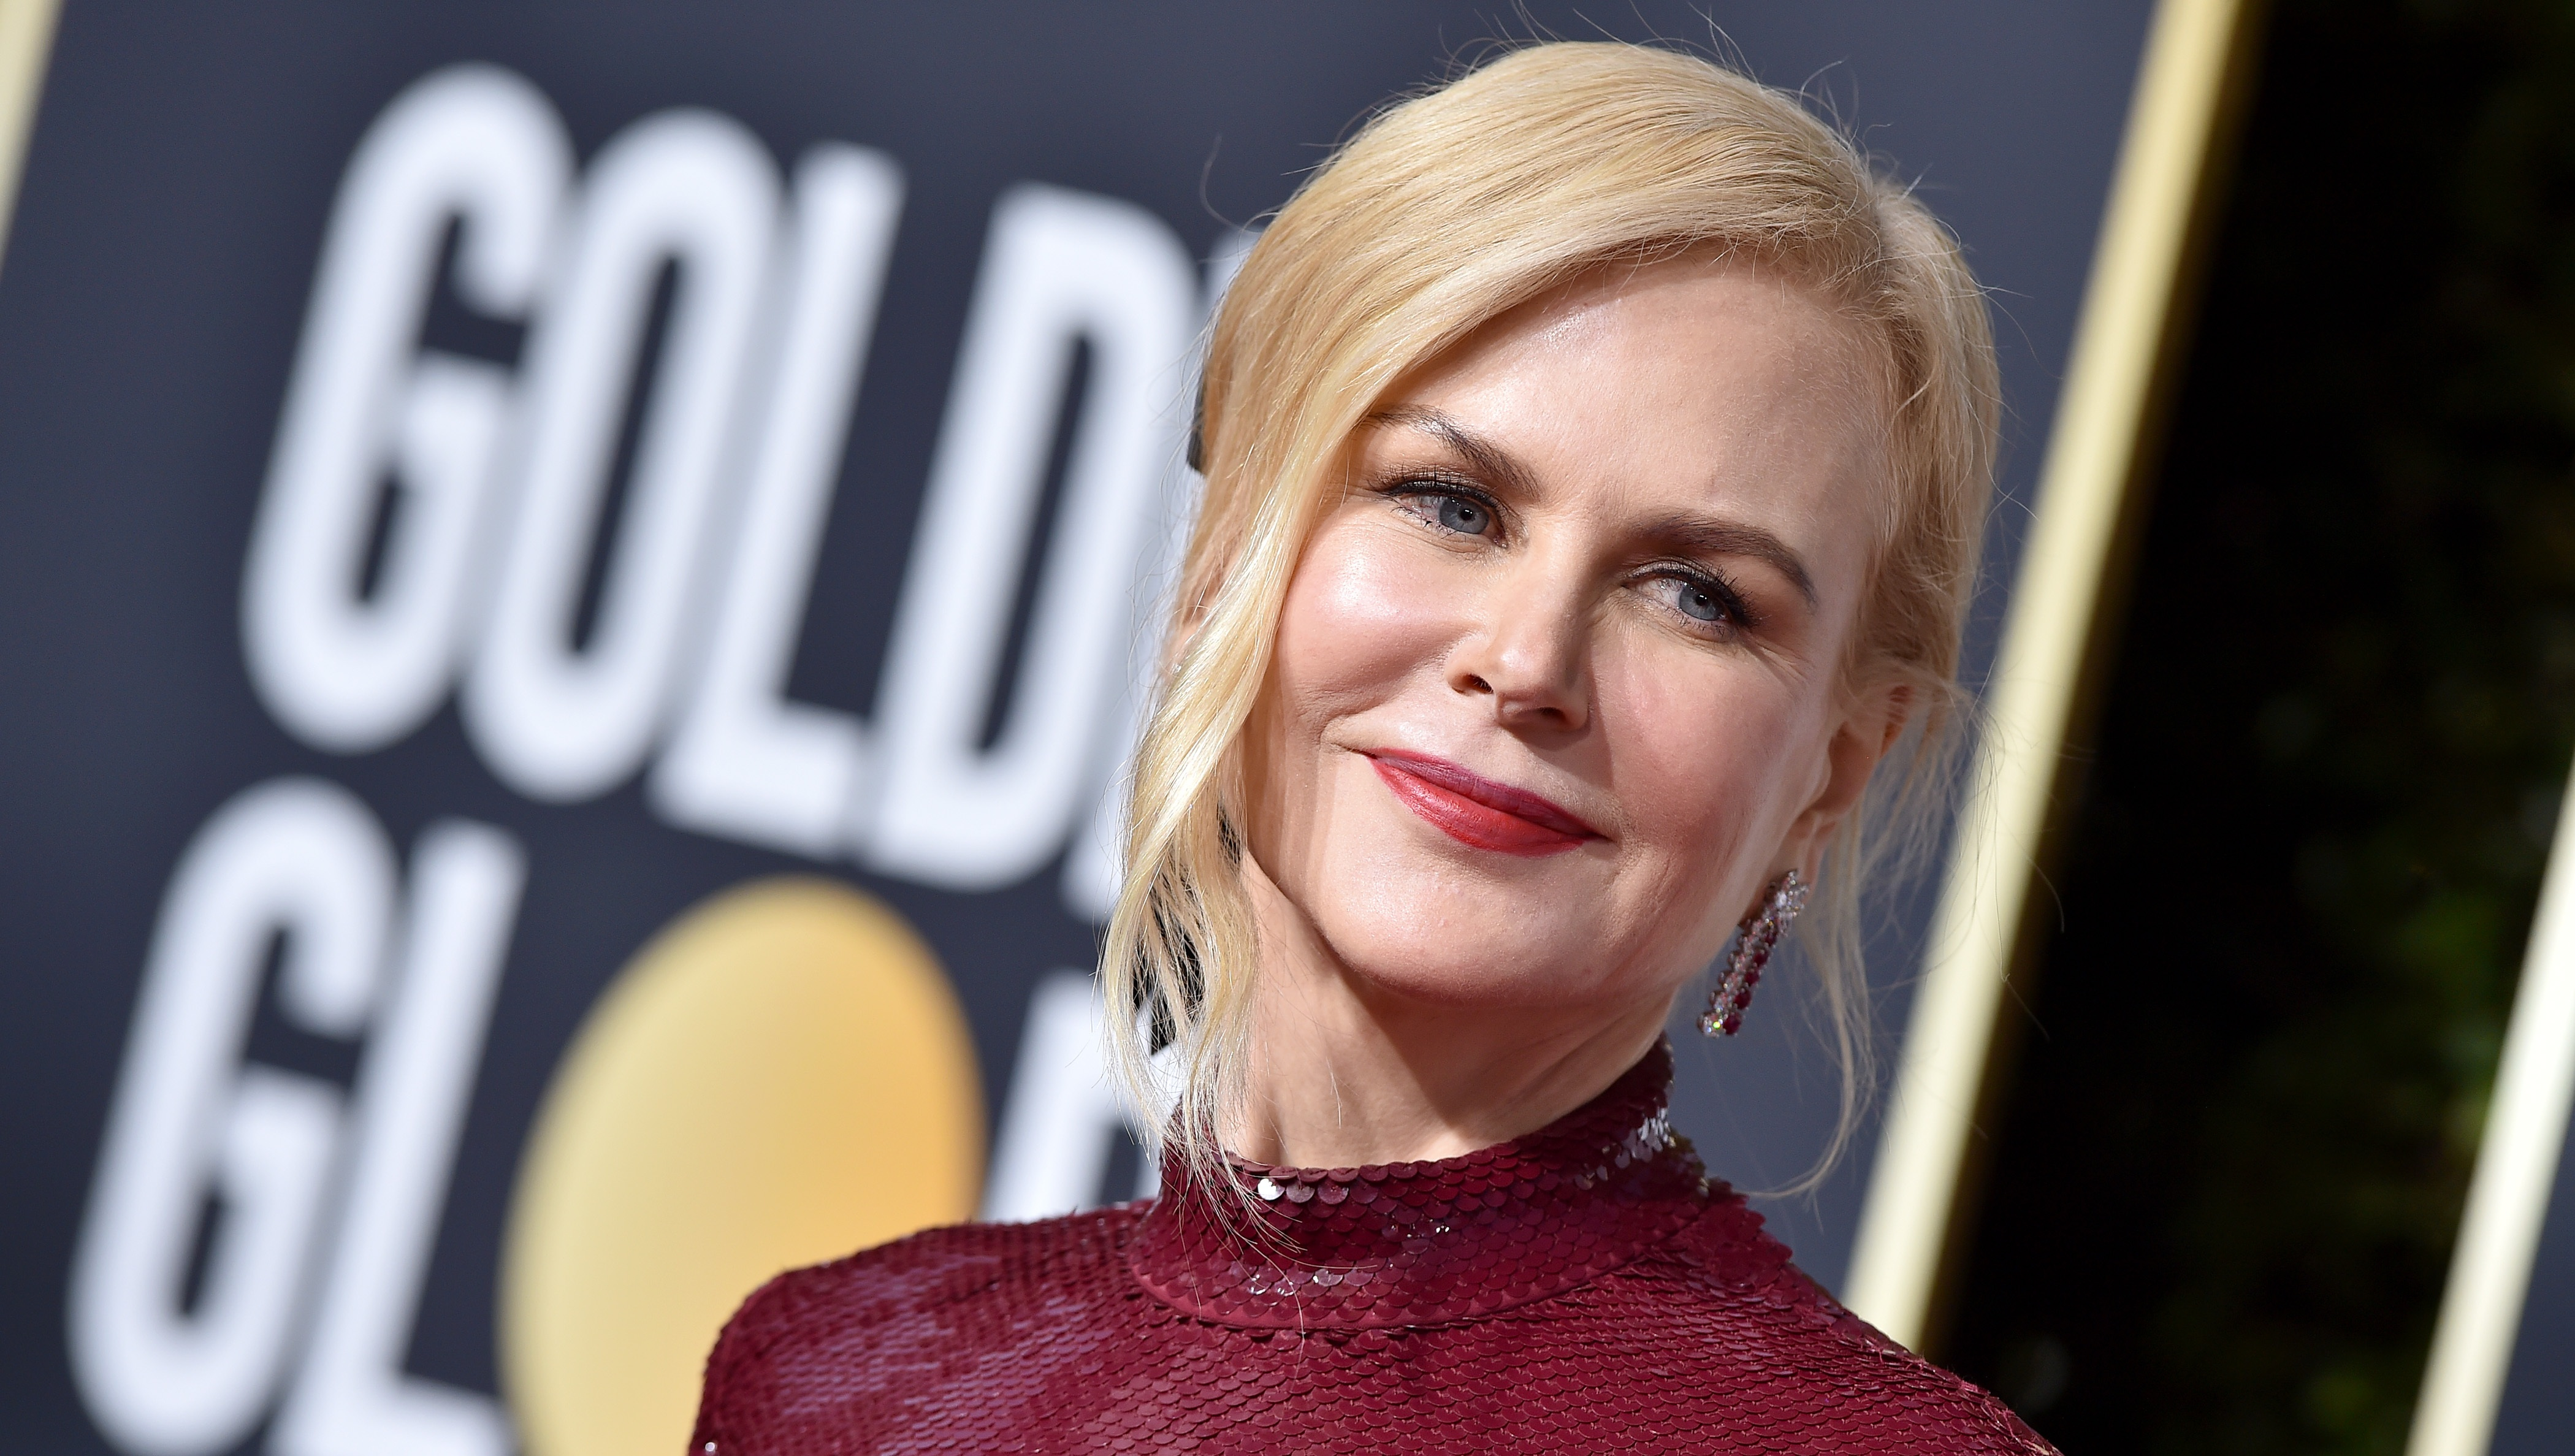 Upclose picture of Nicole Kidman on the Golden Globes red carpet wearing a maroon dress